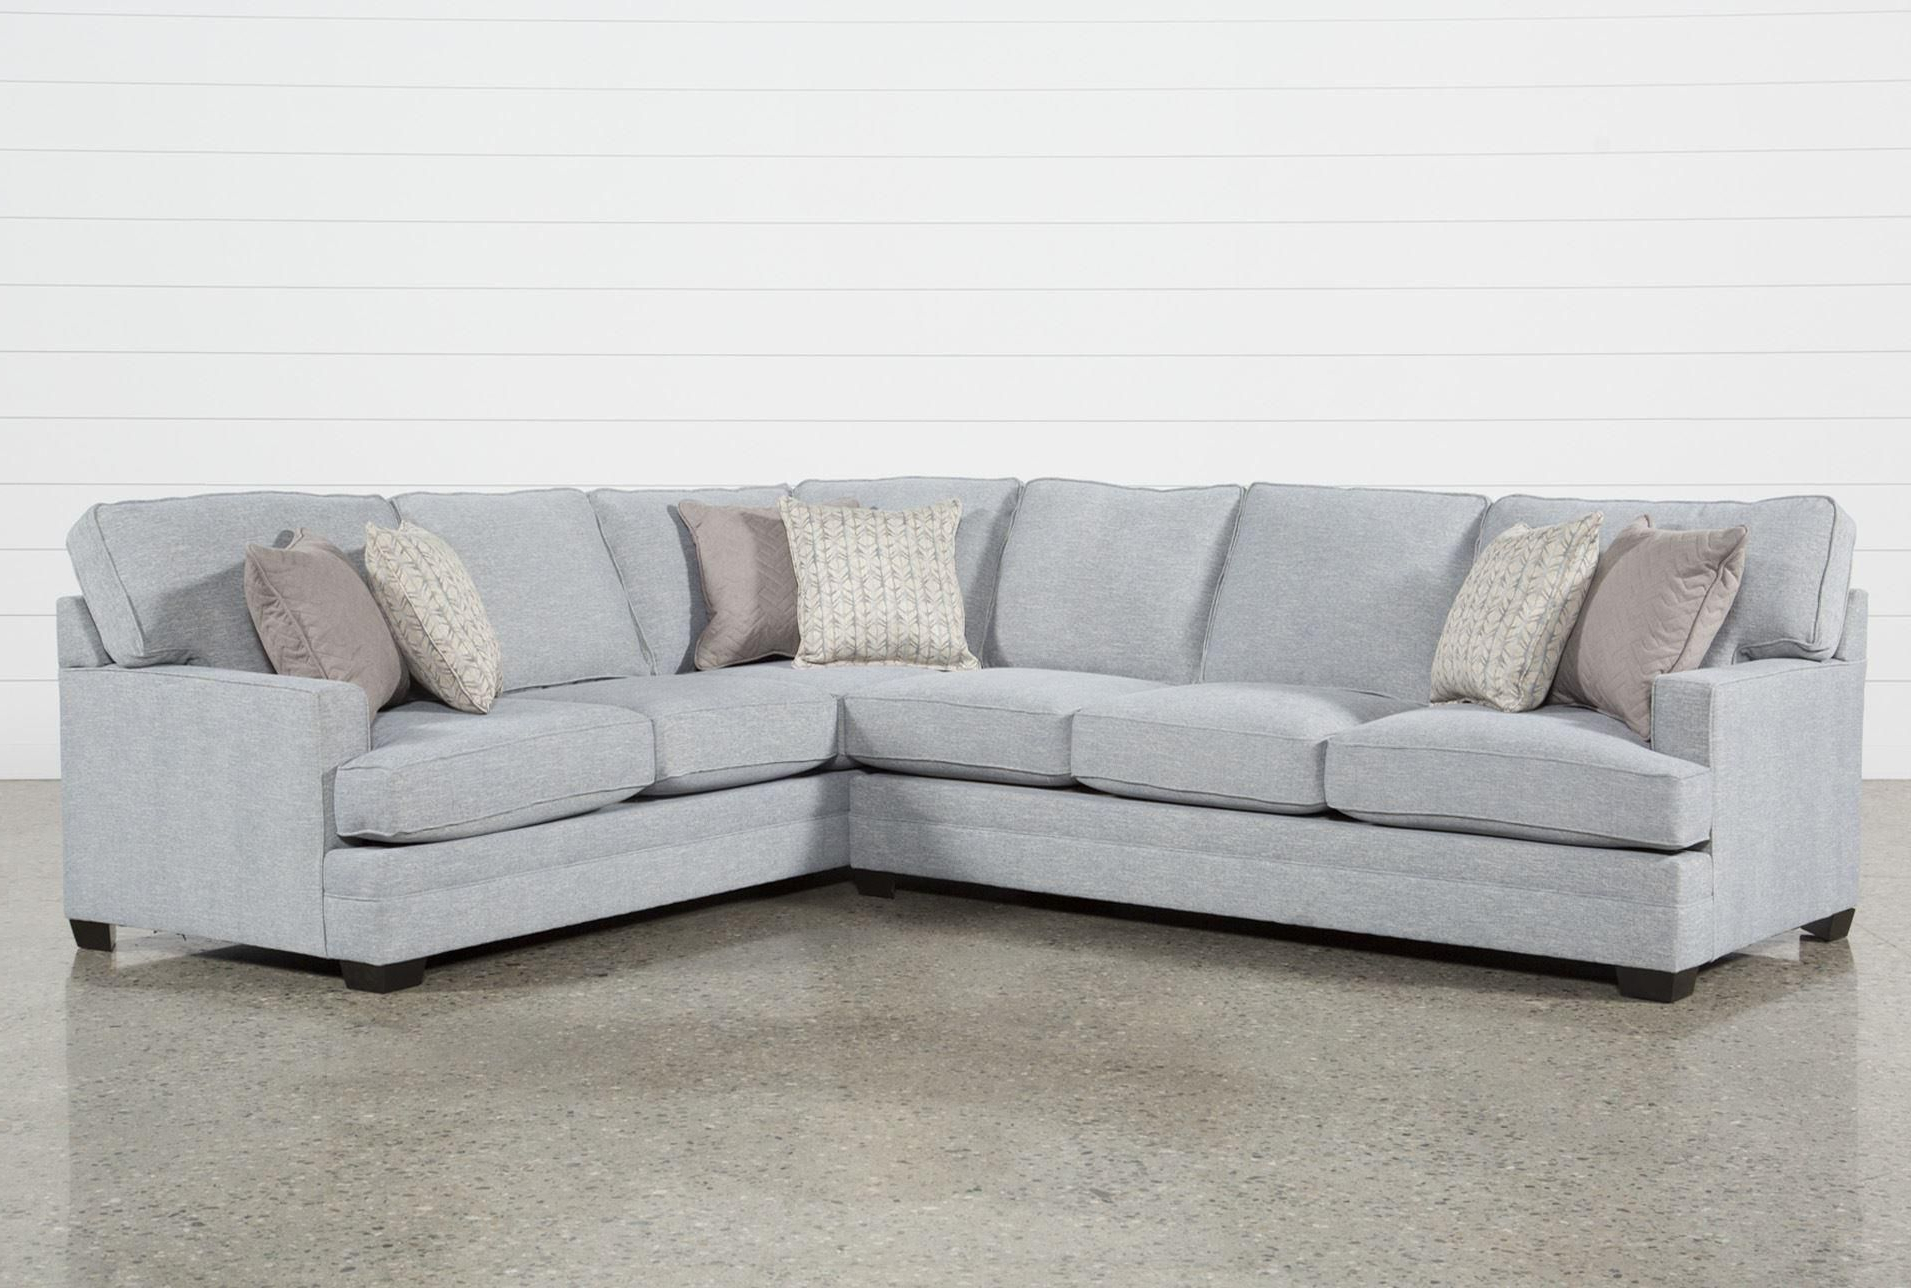 2019 Turdur 2 Piece Sectionals With Raf Loveseat Pertaining To Josephine 2 Piece Sectional W/laf Sofa In  (View 1 of 20)